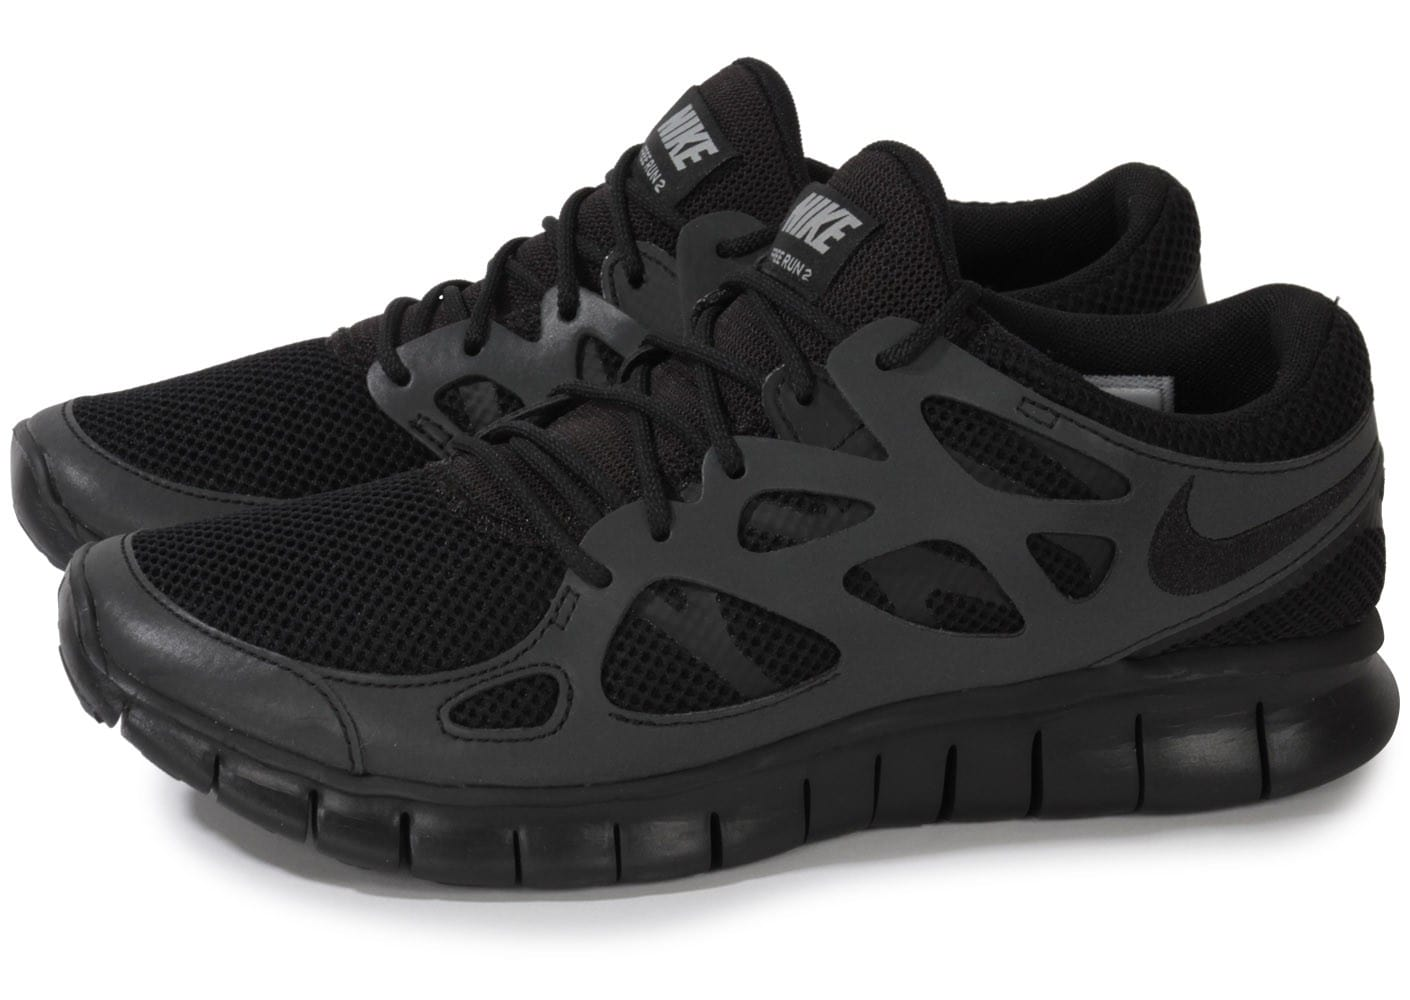 revendeur ca544 3efb5 Nike Free Run 2 Noire - Chaussures Baskets homme - Chausport